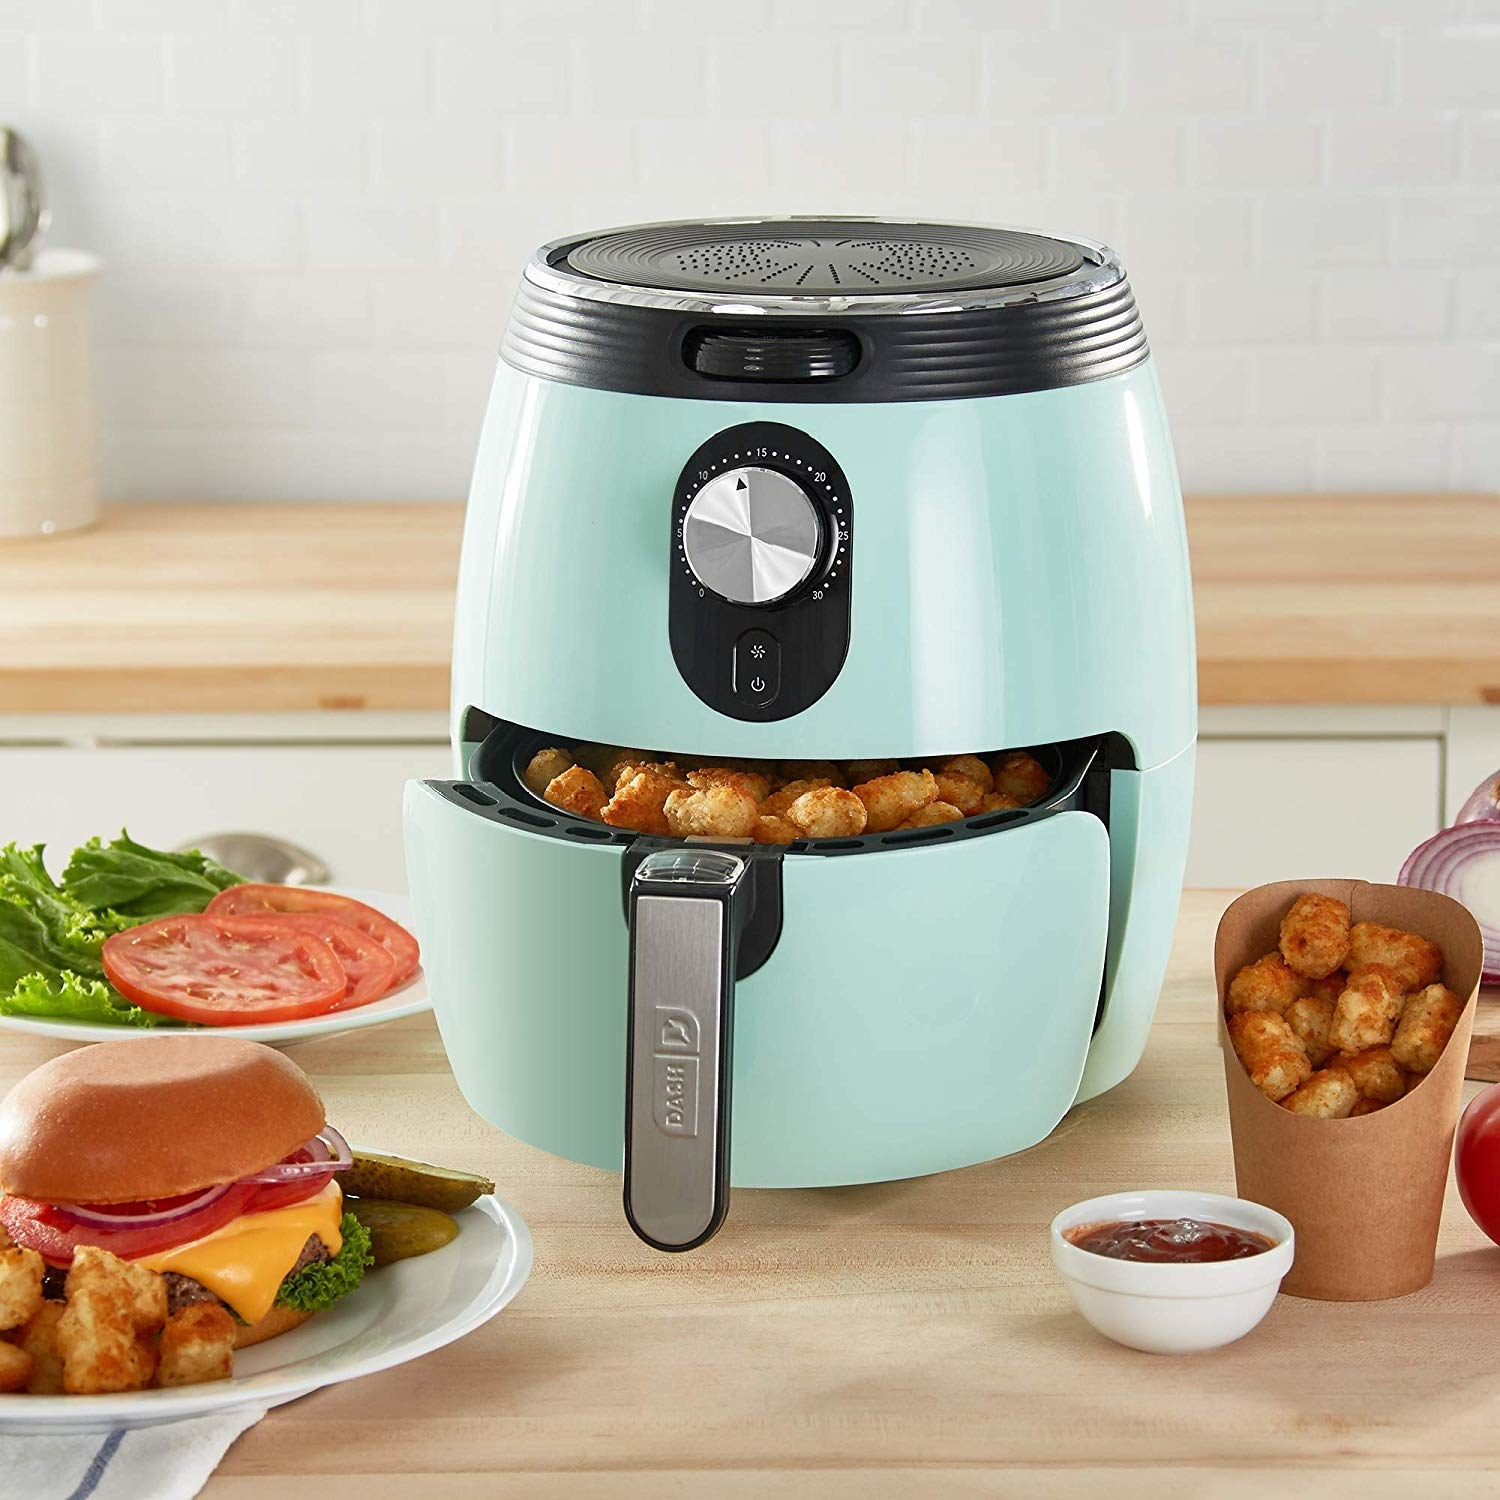 The light blue air fryer with basket filled with tater tots